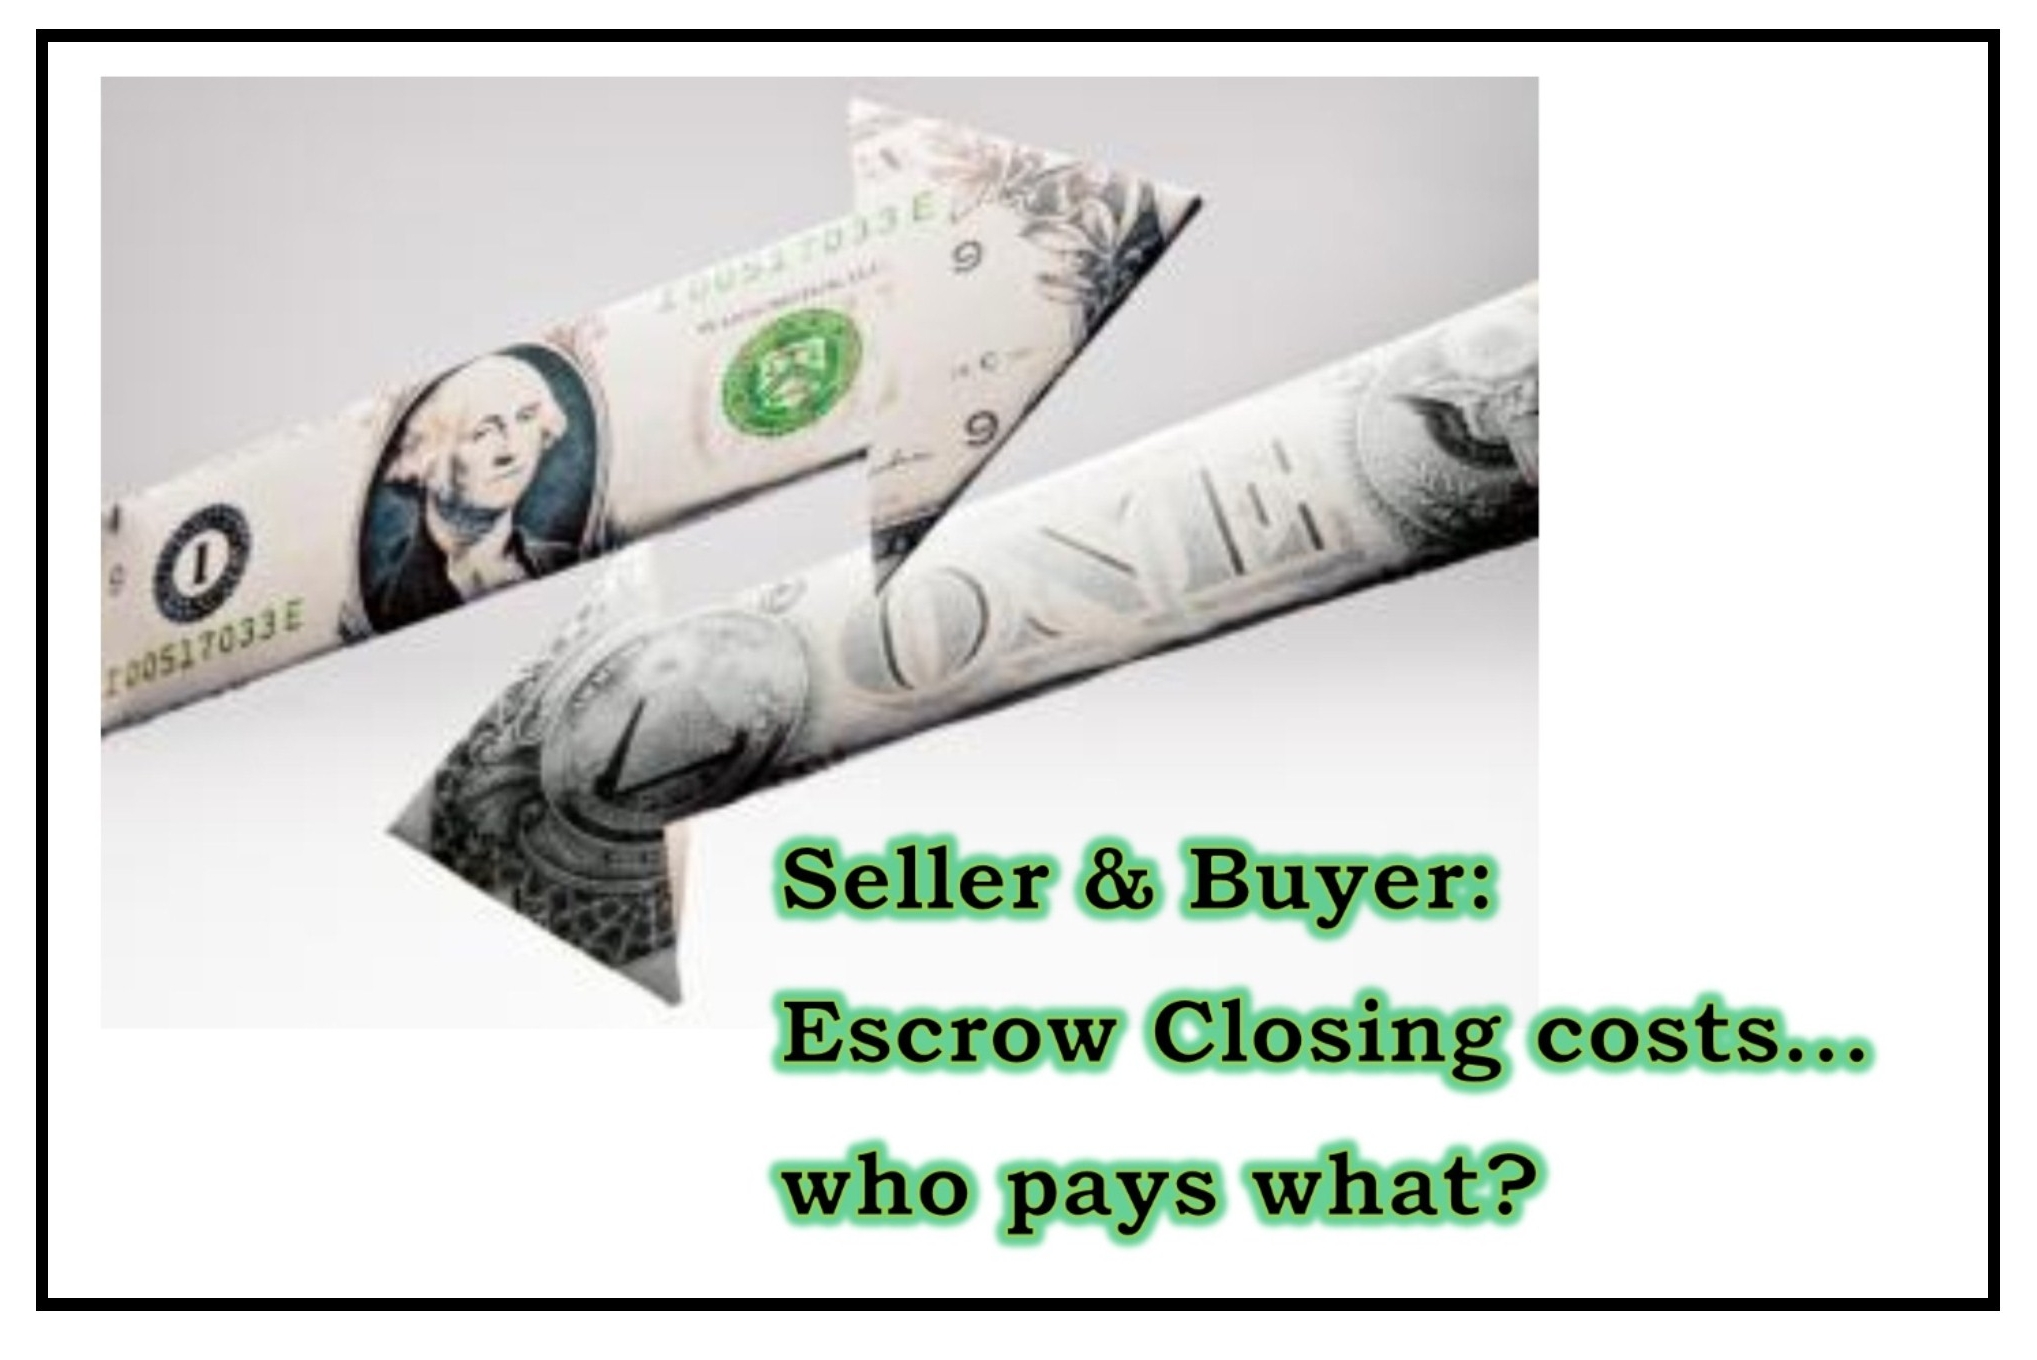 Escrow Closing costs - who pays what?